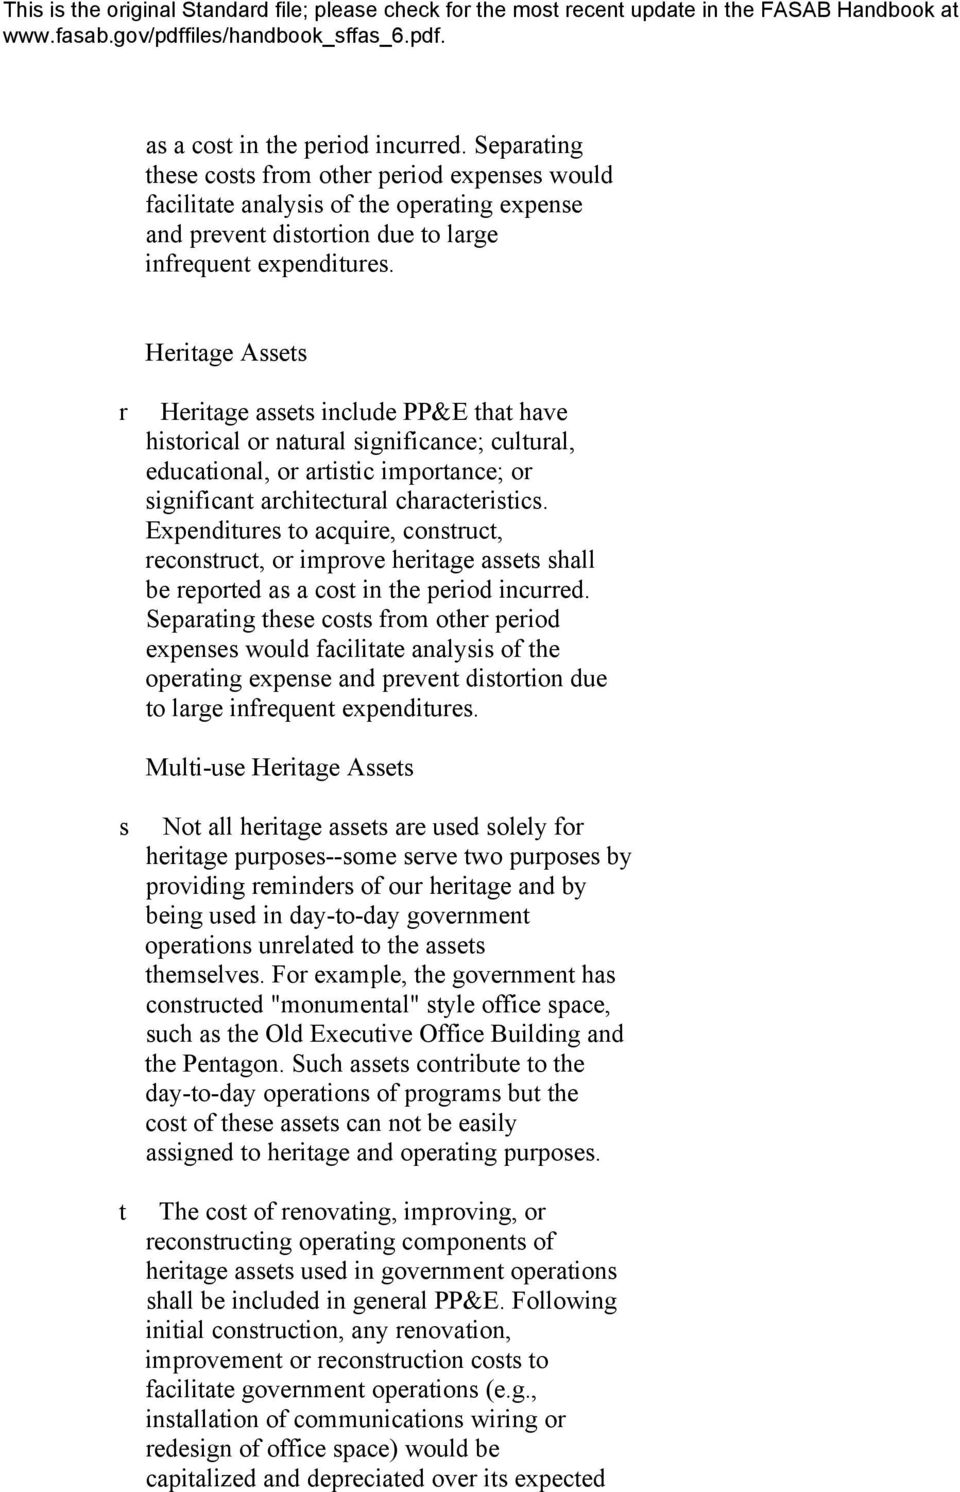 Expenditures to acquire, construct, reconstruct, or improve heritage assets shall be reported  Multi-use Heritage Assets s t Not all heritage assets are used solely for heritage purposes--some serve